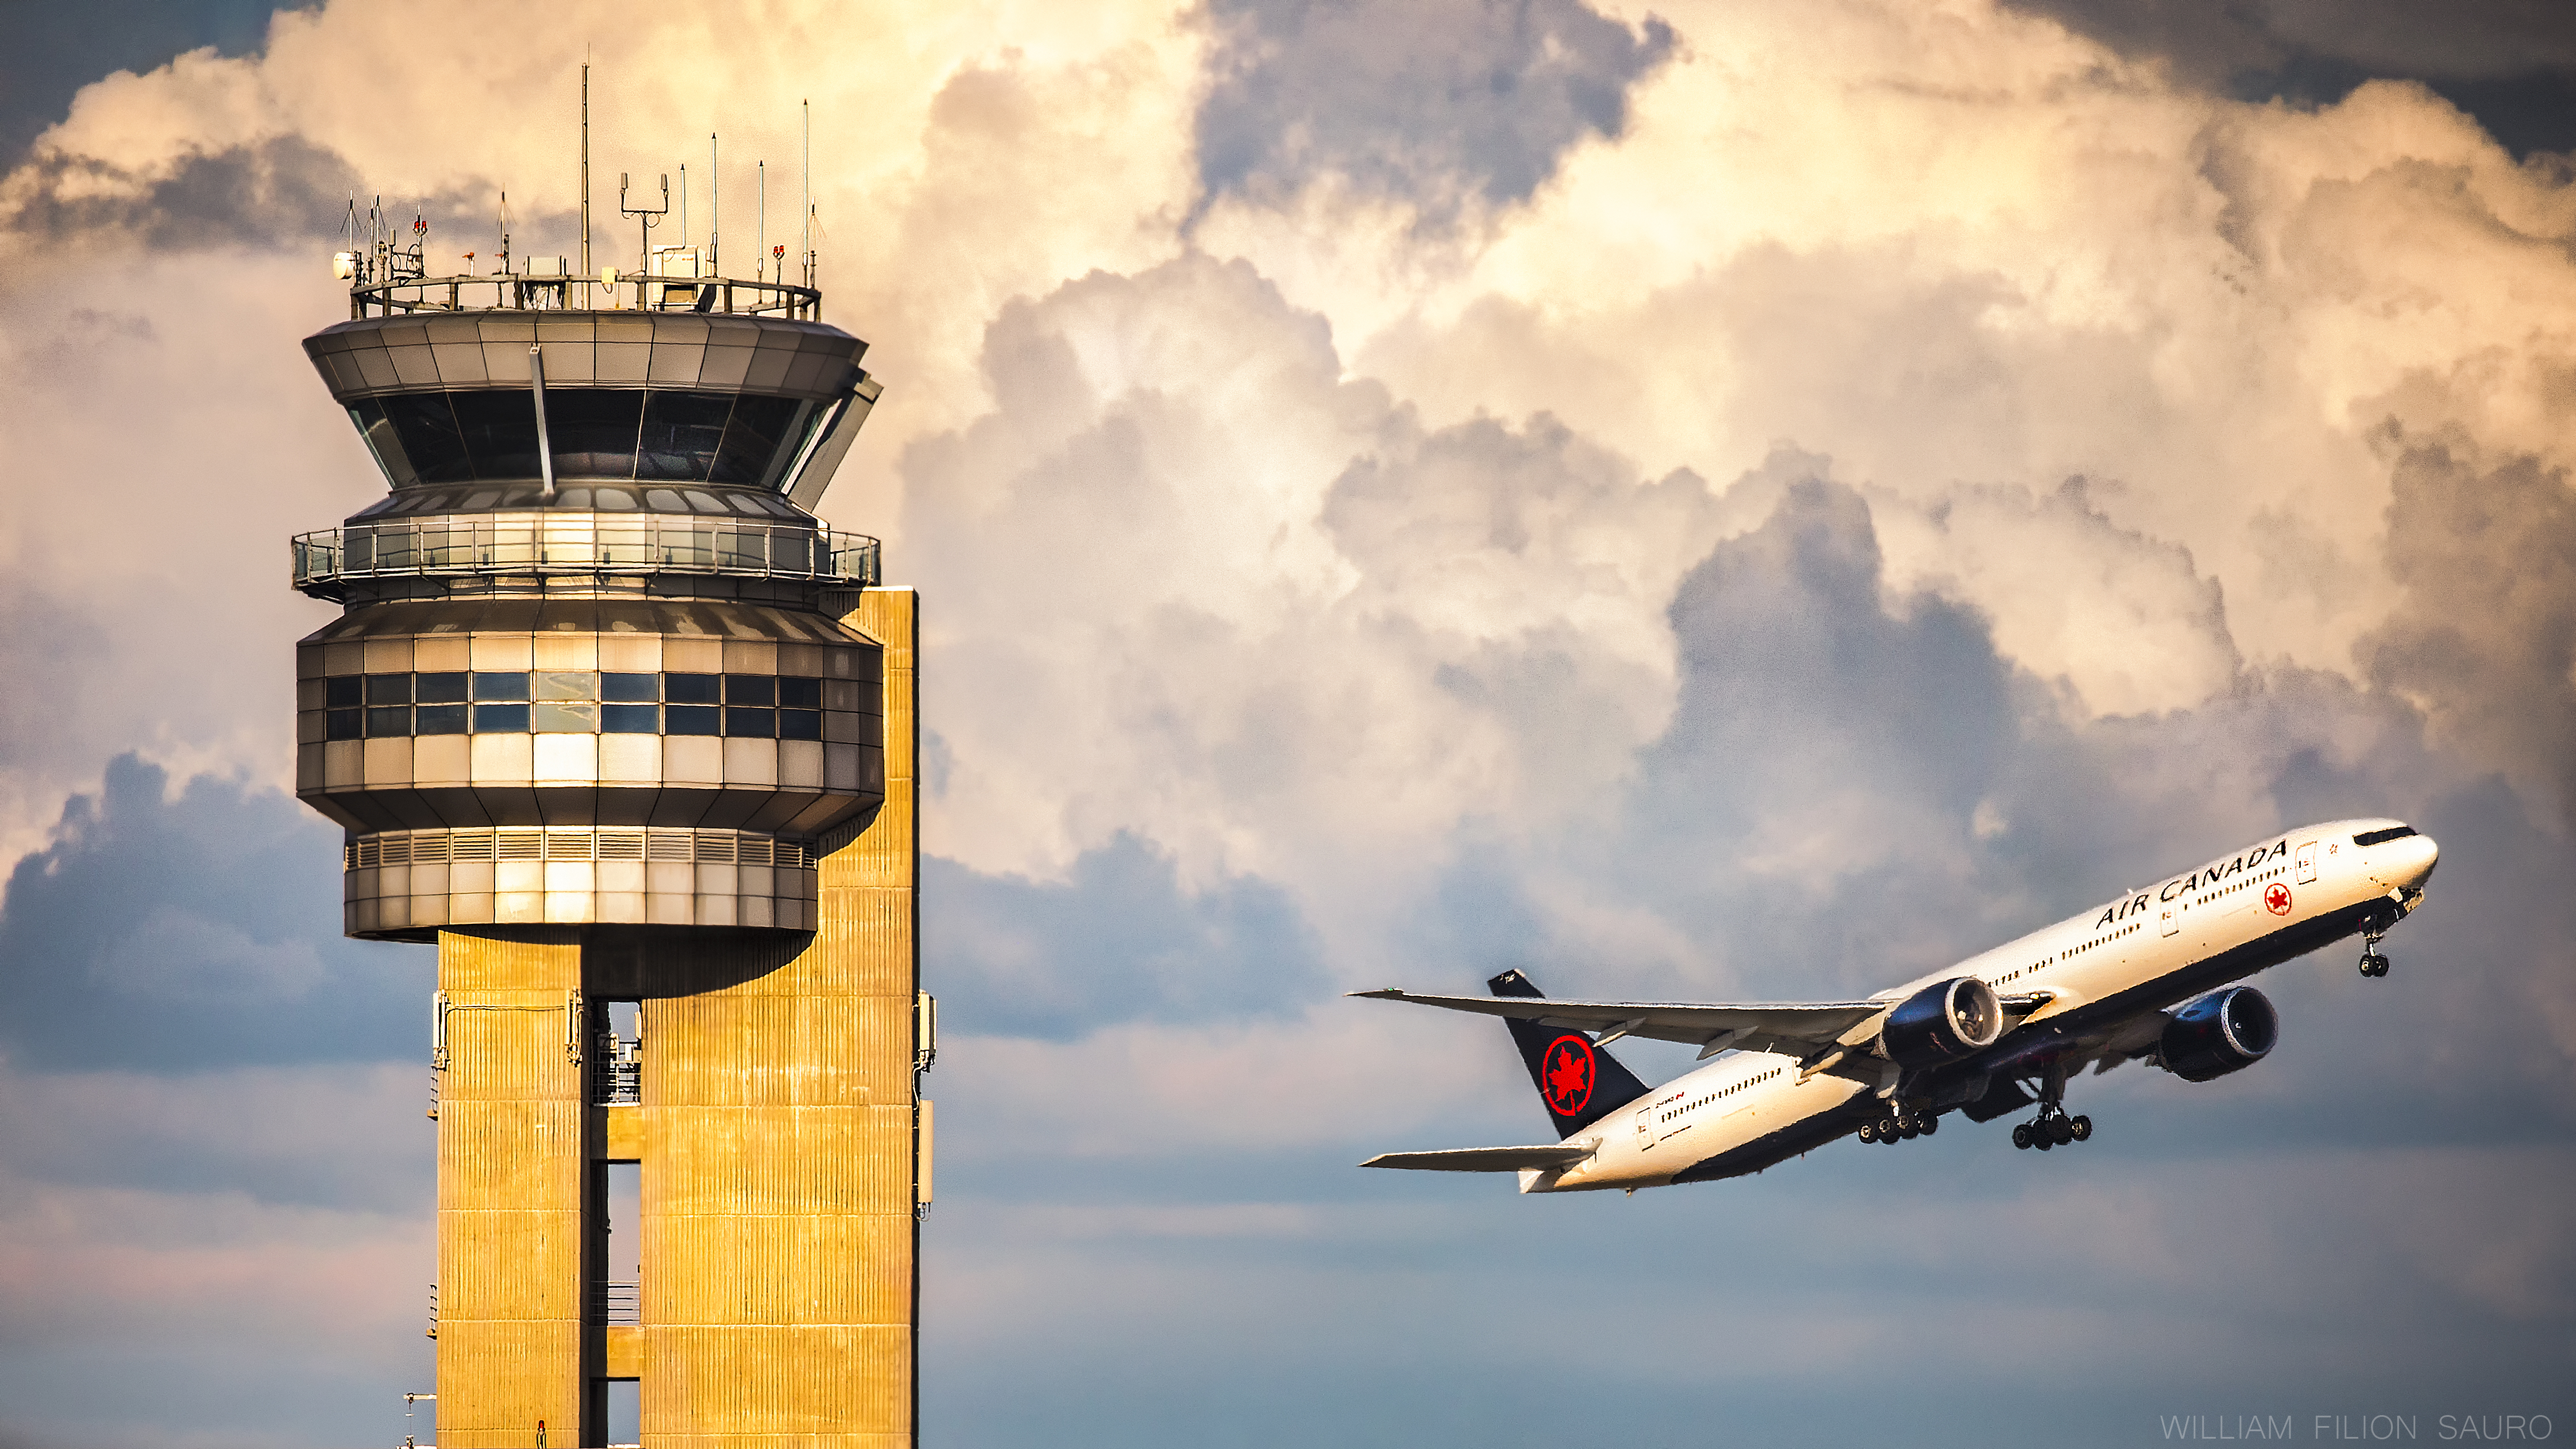 A gorgeous shot of an Air Canada 777 taking off in front of YUL's iconic control tower. Photo submitted by William Filion Sauro (Instagram user @etops_exposure) using #skiesmag.